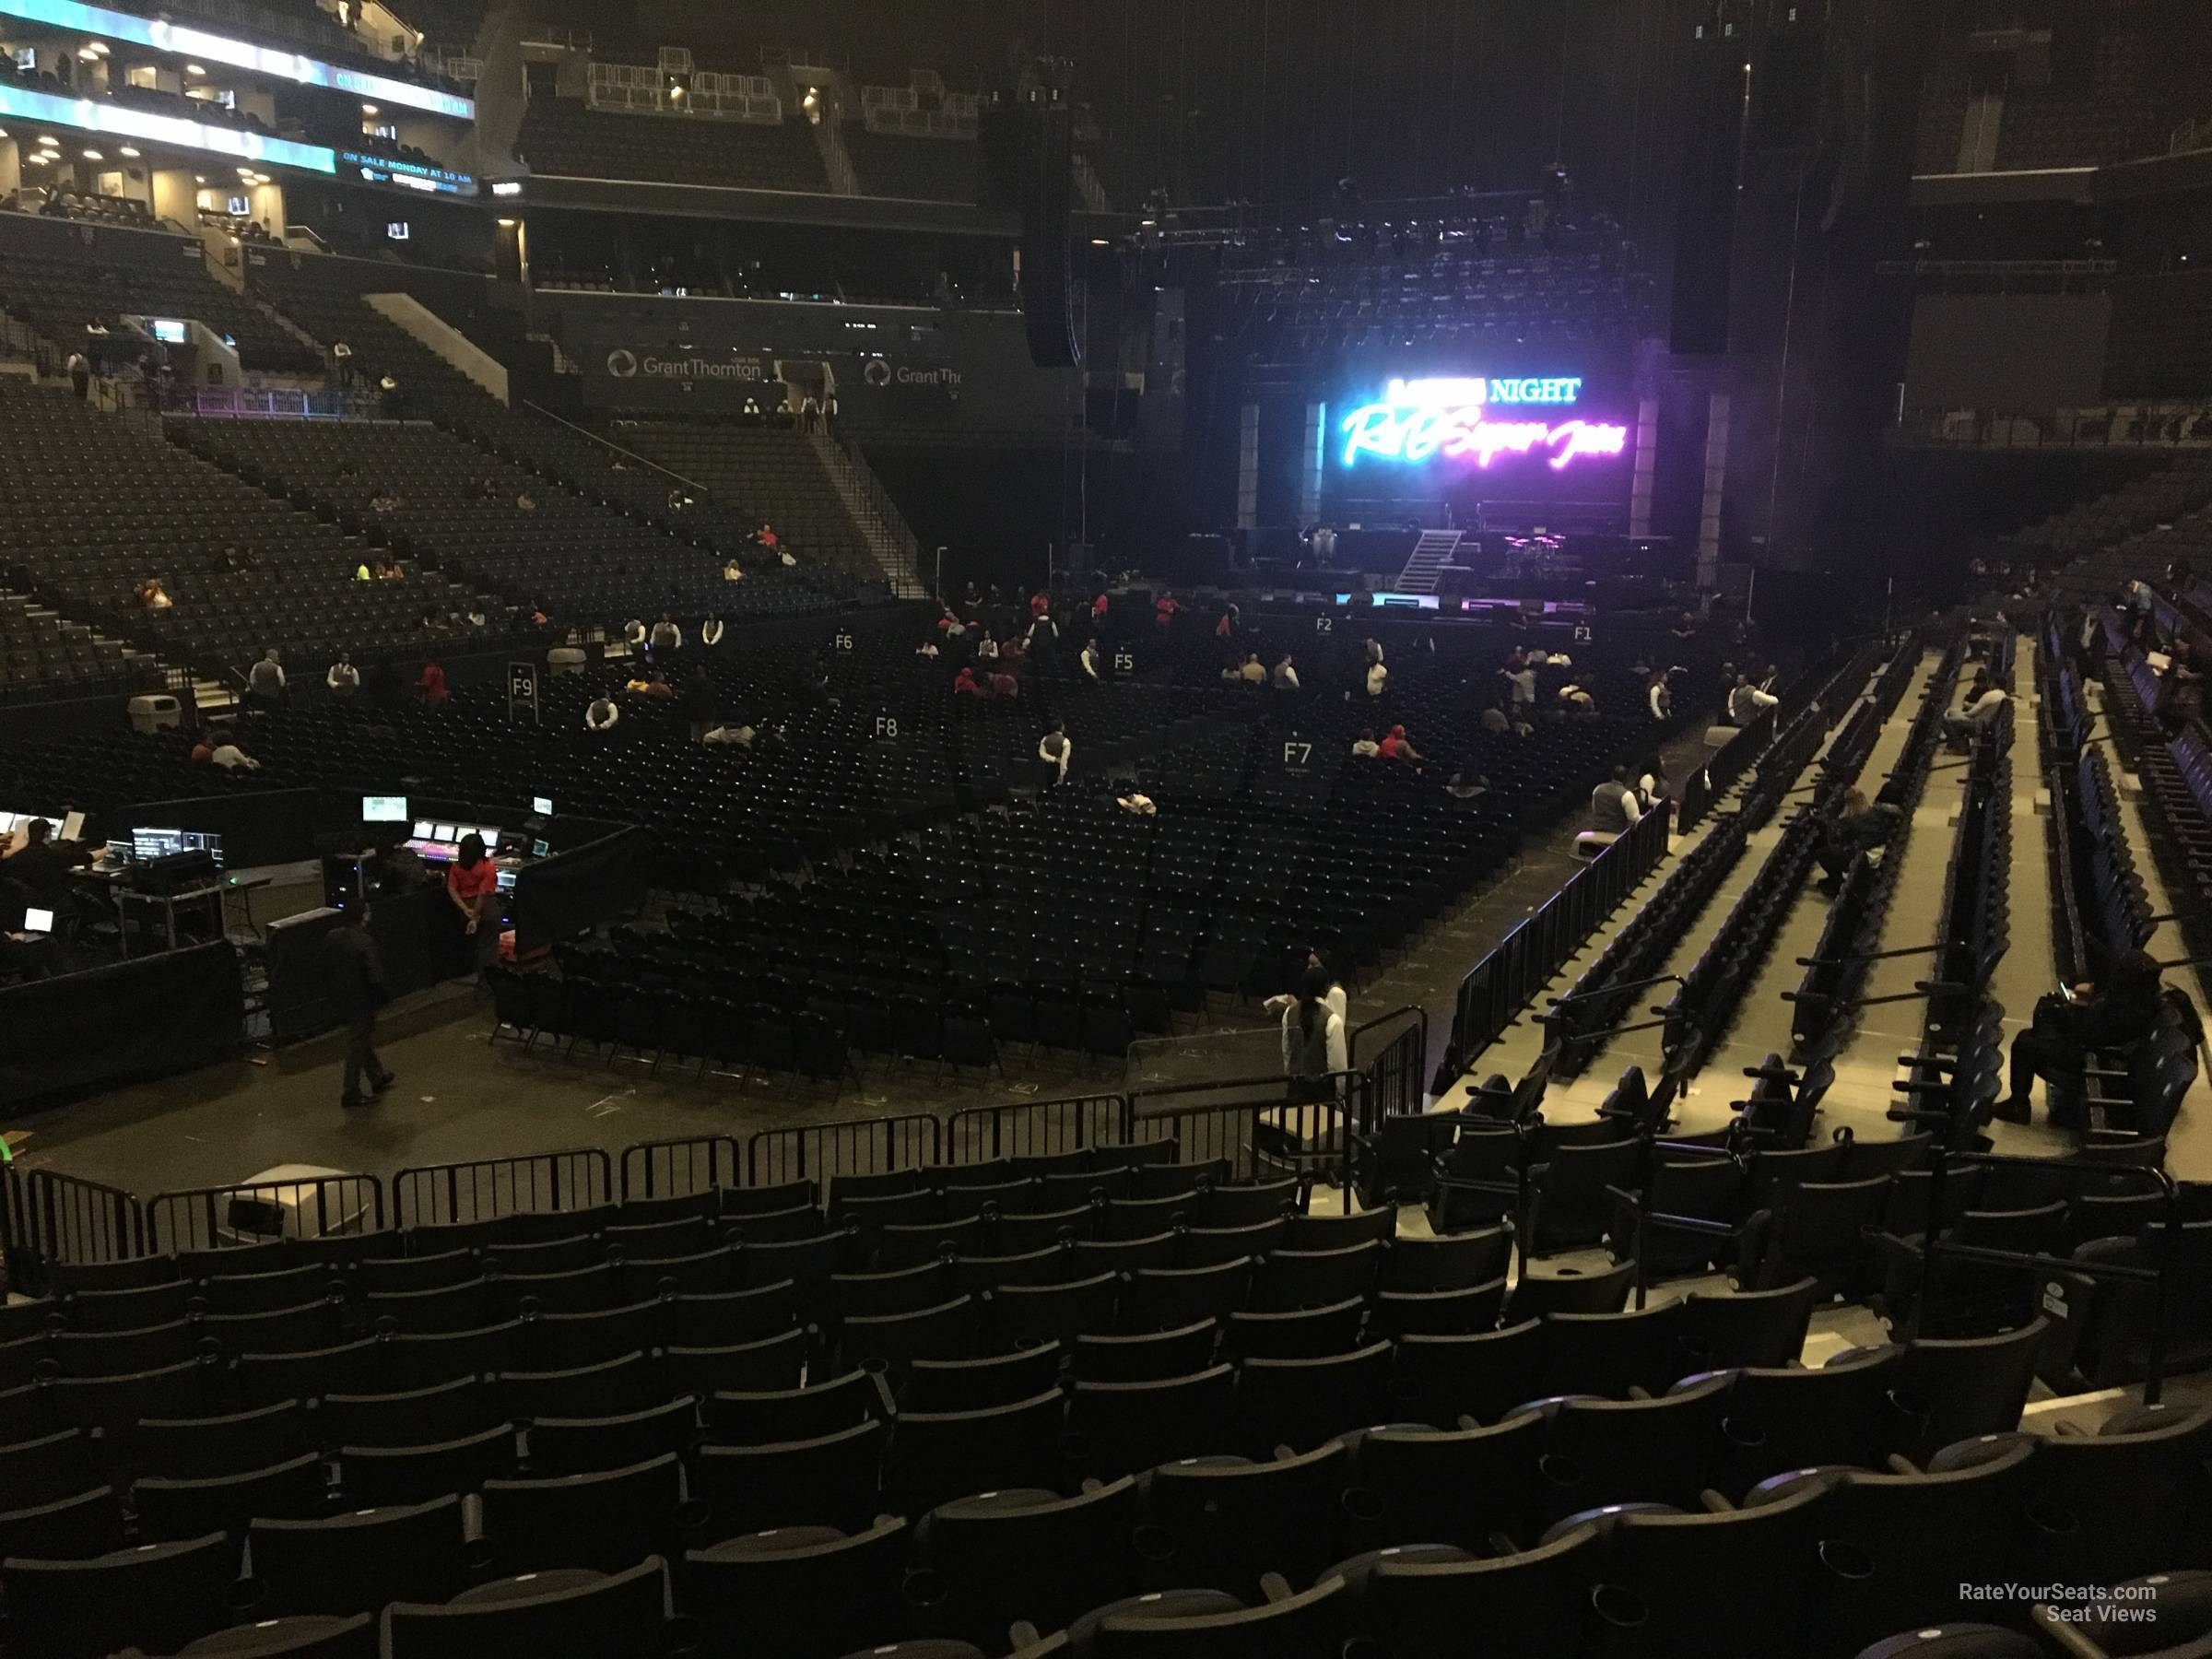 Barclays Center Section 13 Concert Seating Rateyourseats Com